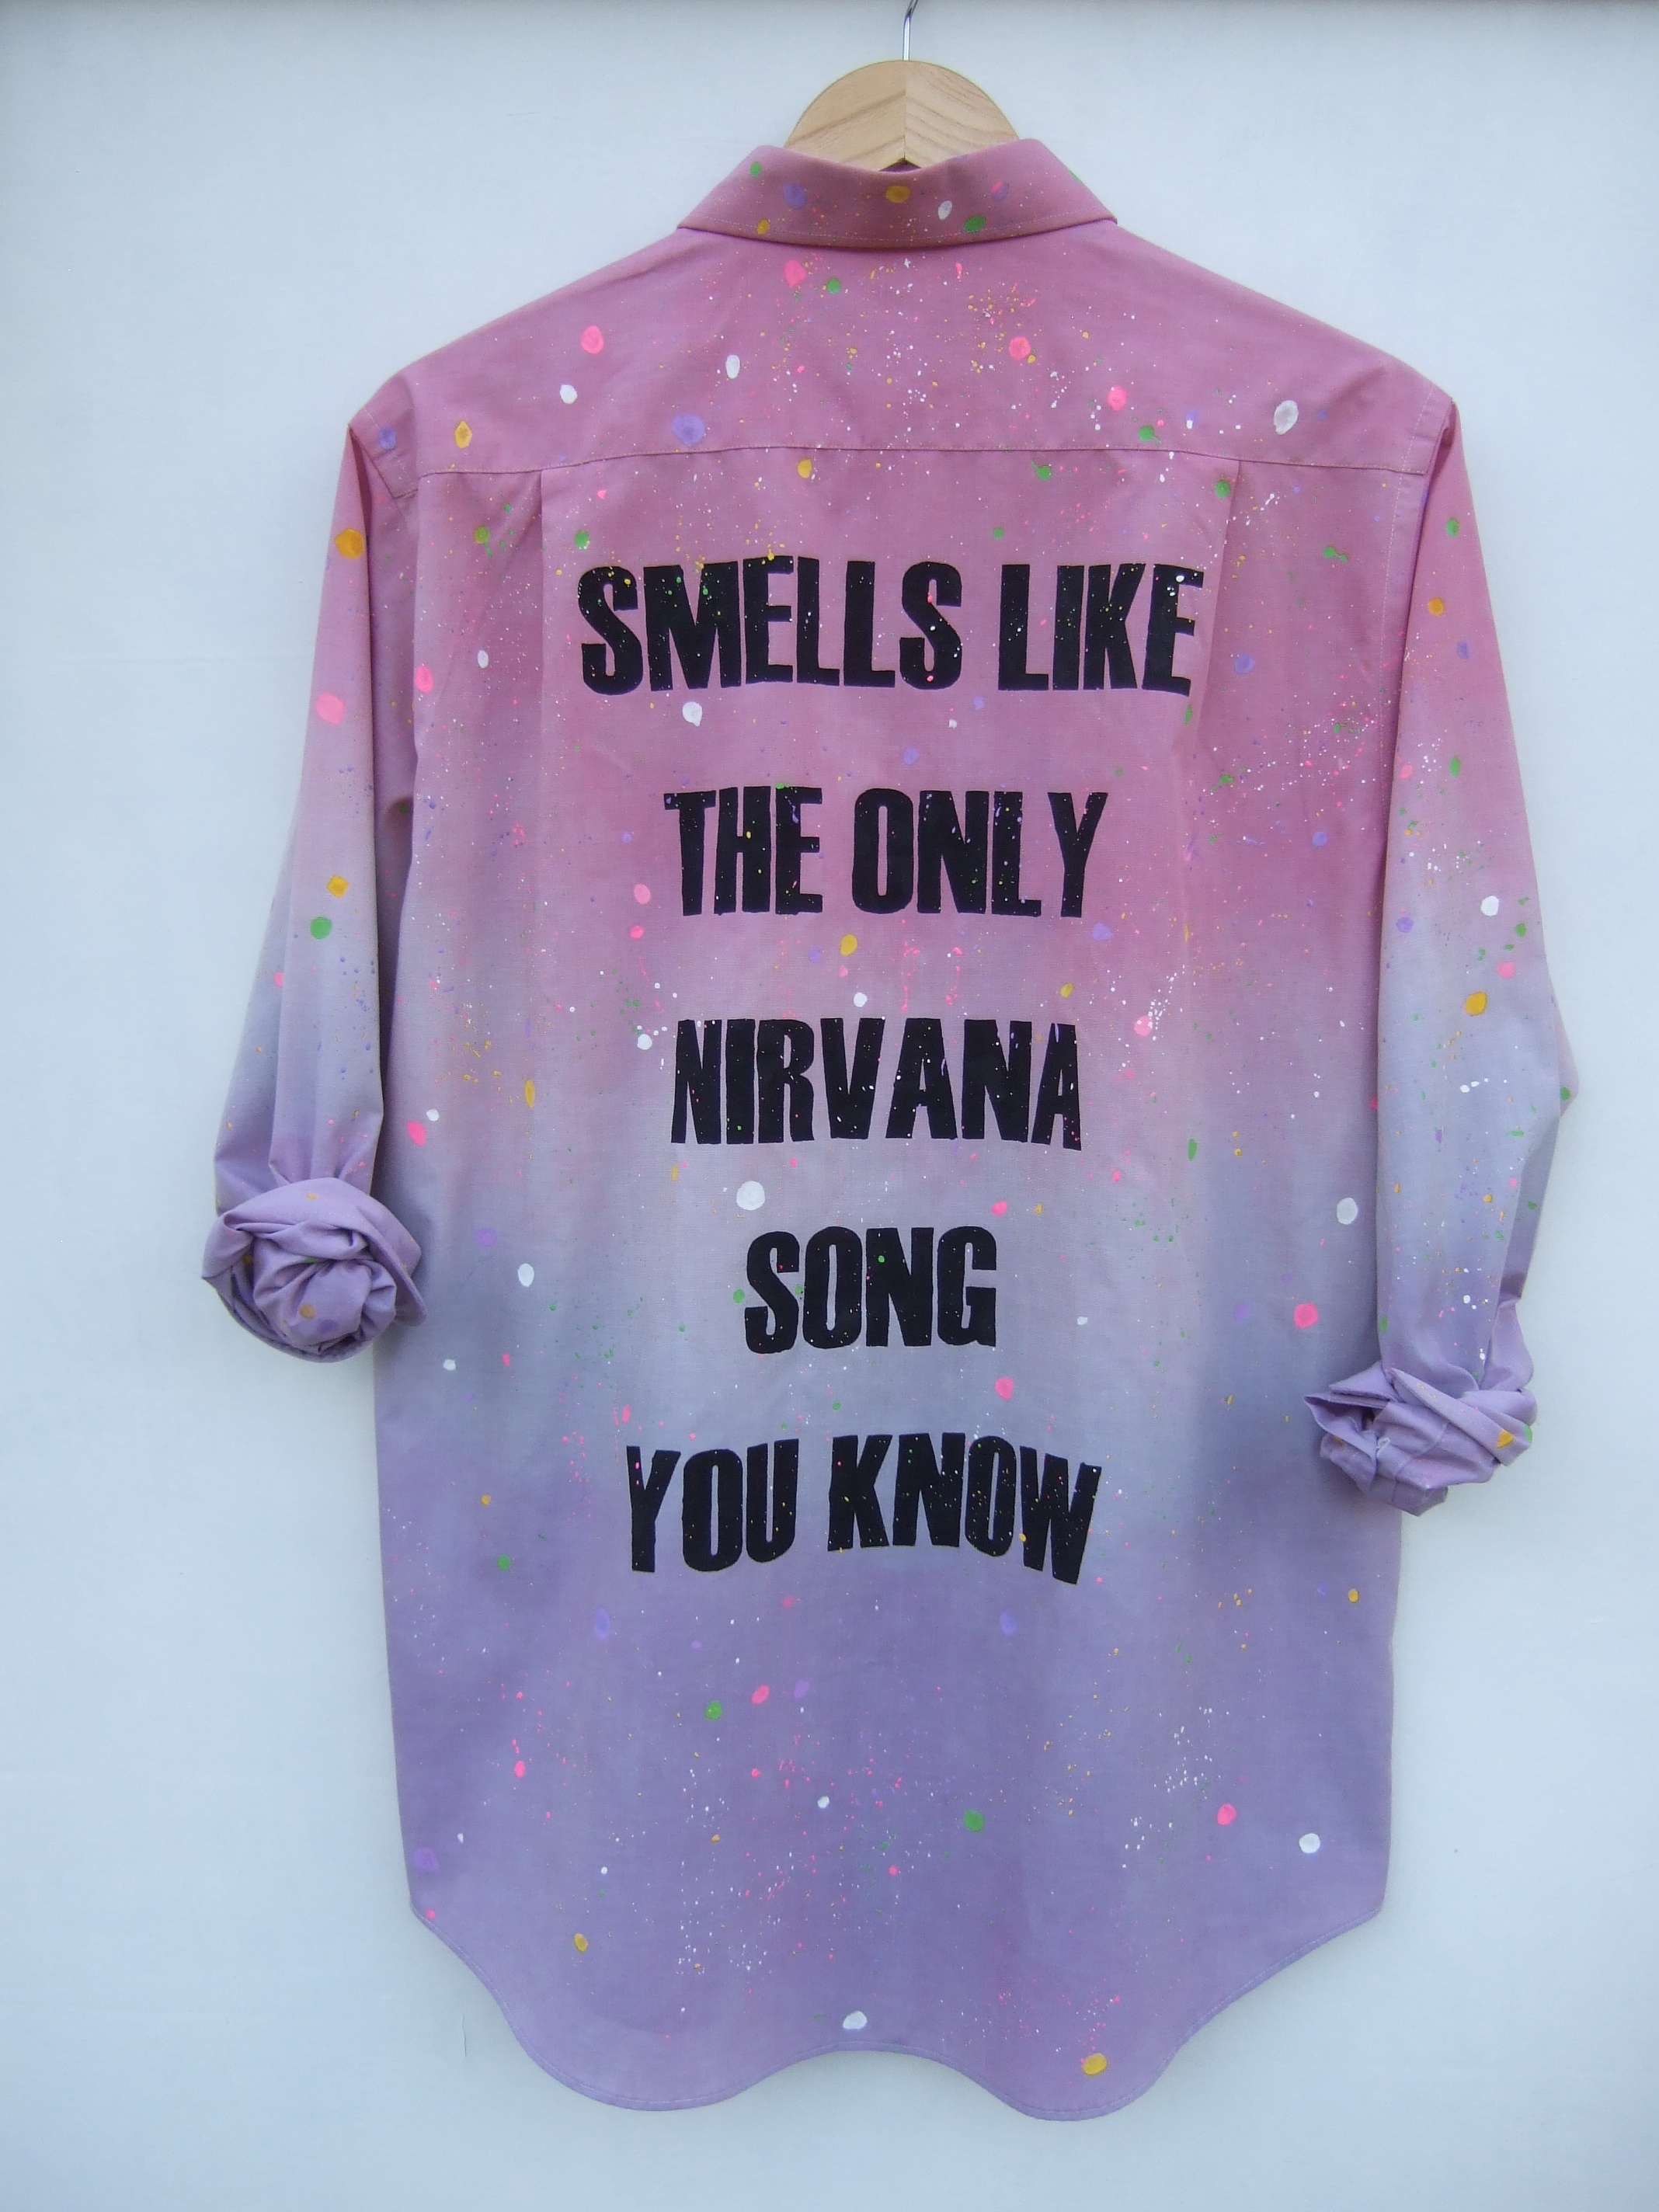 Smells like the only nirvana song you know tie dye splash shirt · tappington and wish · online store powered by storenvy